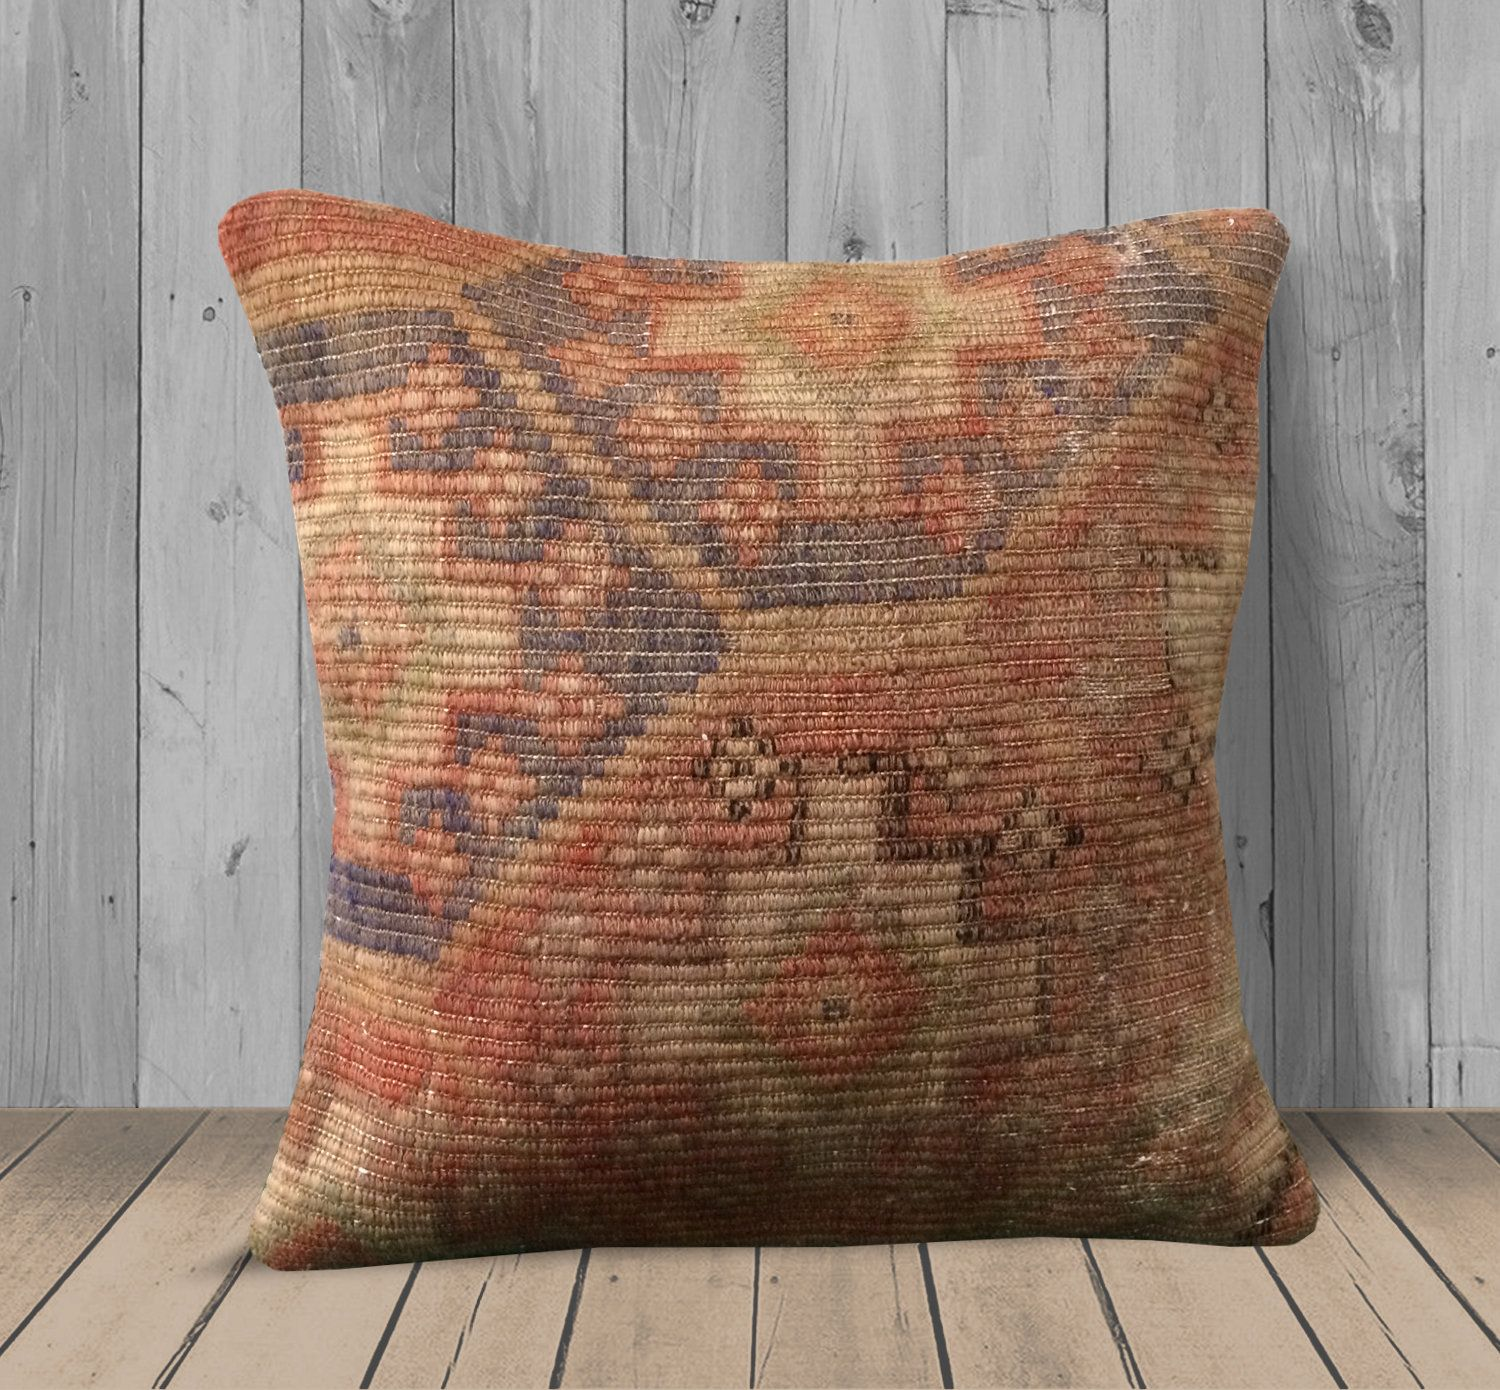 Burnt Orange Navy Large Pillow Covers 20x20 Southwest Kilim Pillow Cases Handmade Pillows Pastel Pillow Throw Pillows Cushion For Couch Large Pillow Covers Large Pillows Handmade Pillows